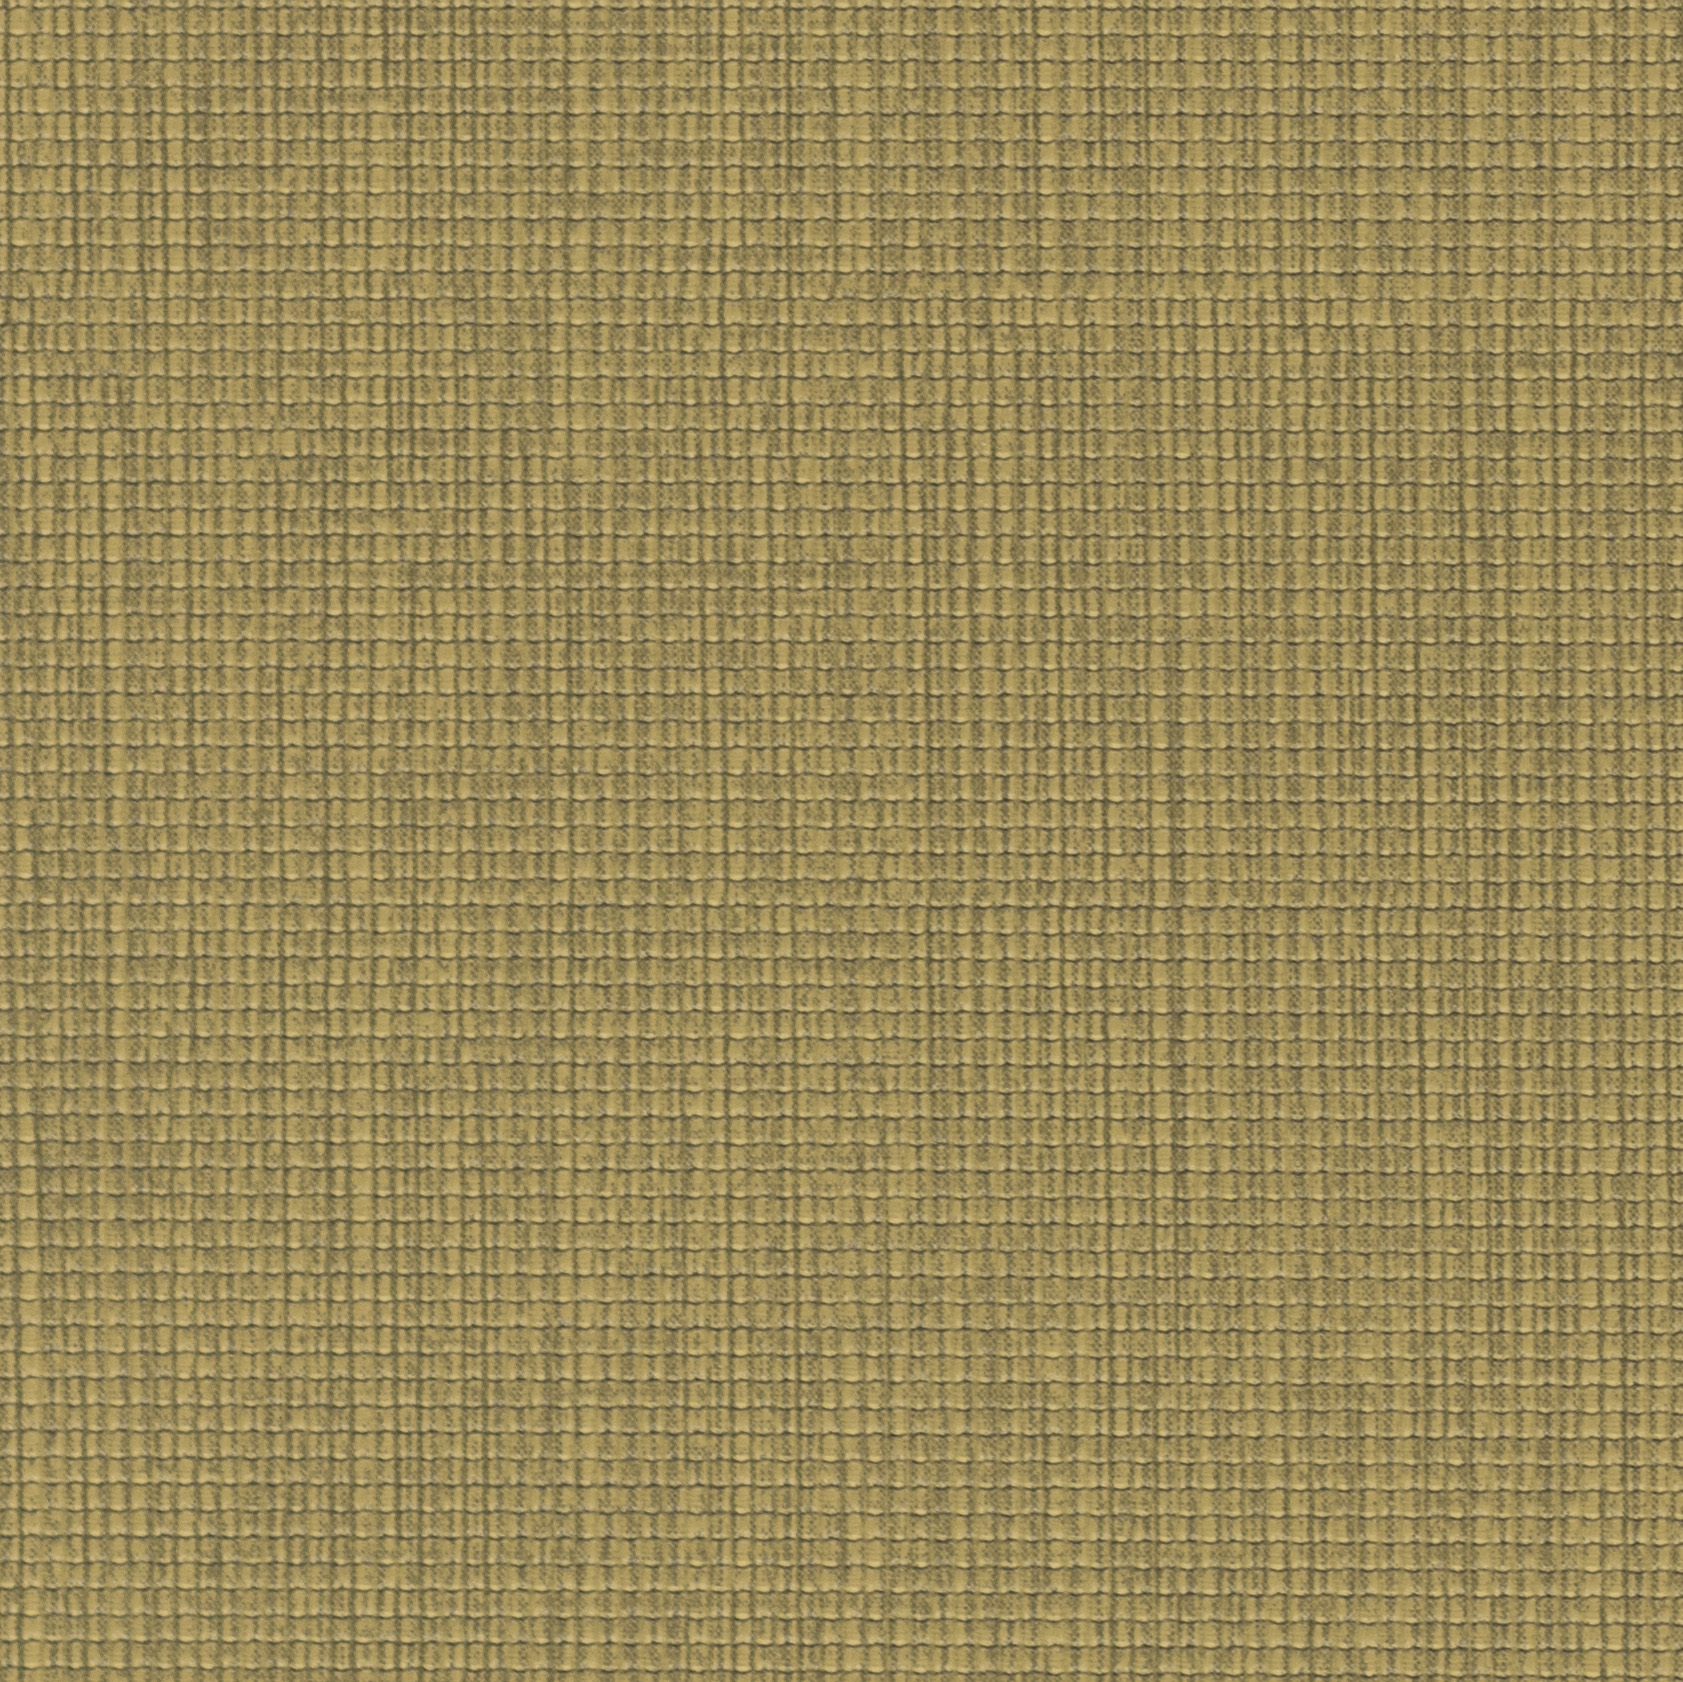 Linen - 18ct - Natural - Fat Quarter